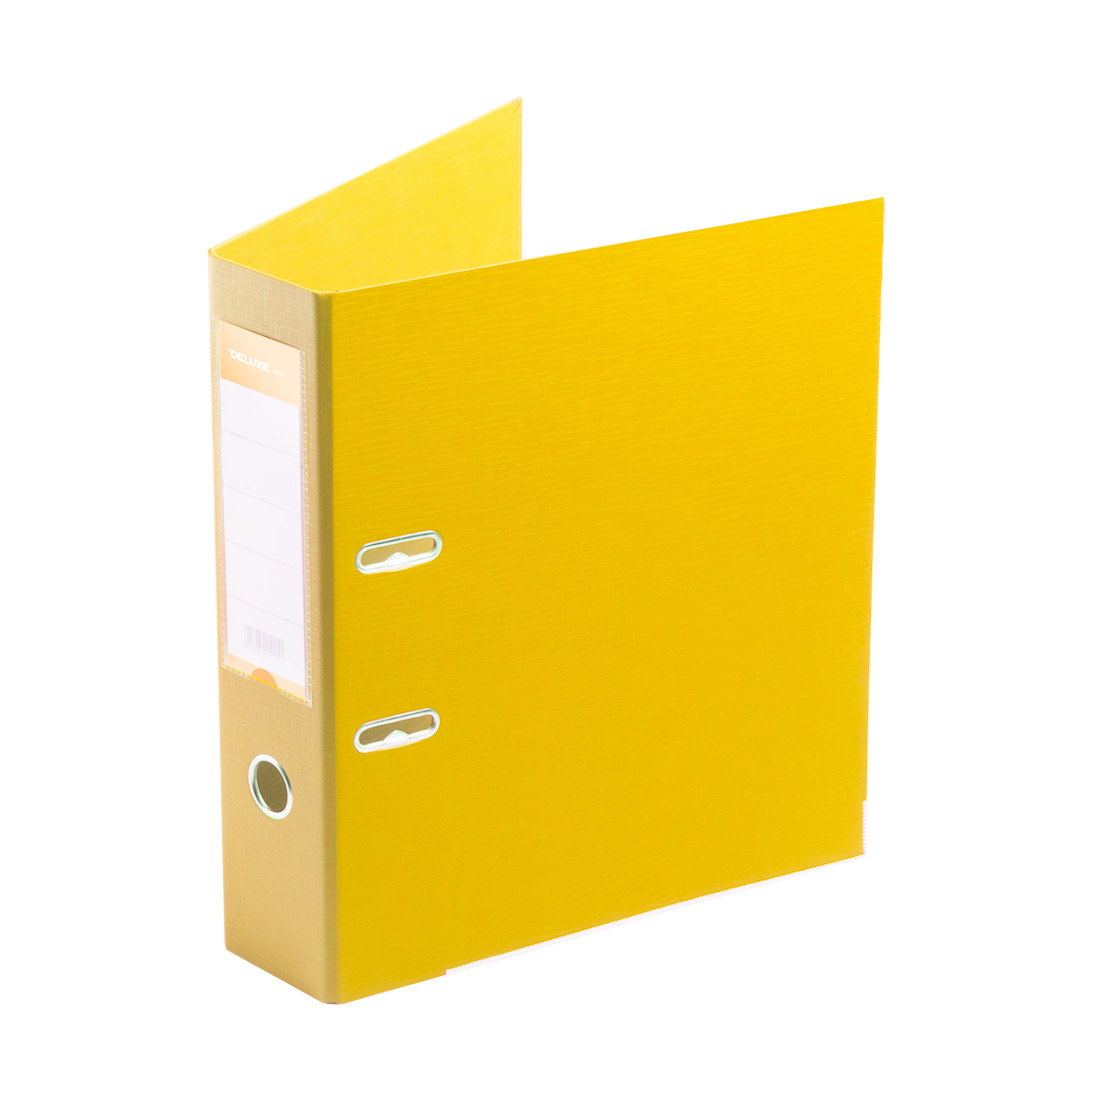 "Папка–регистратор Deluxe с арочным механизмом, Office 3-YW5 (3"" YELLOW), А4, 70 мм, желтый"